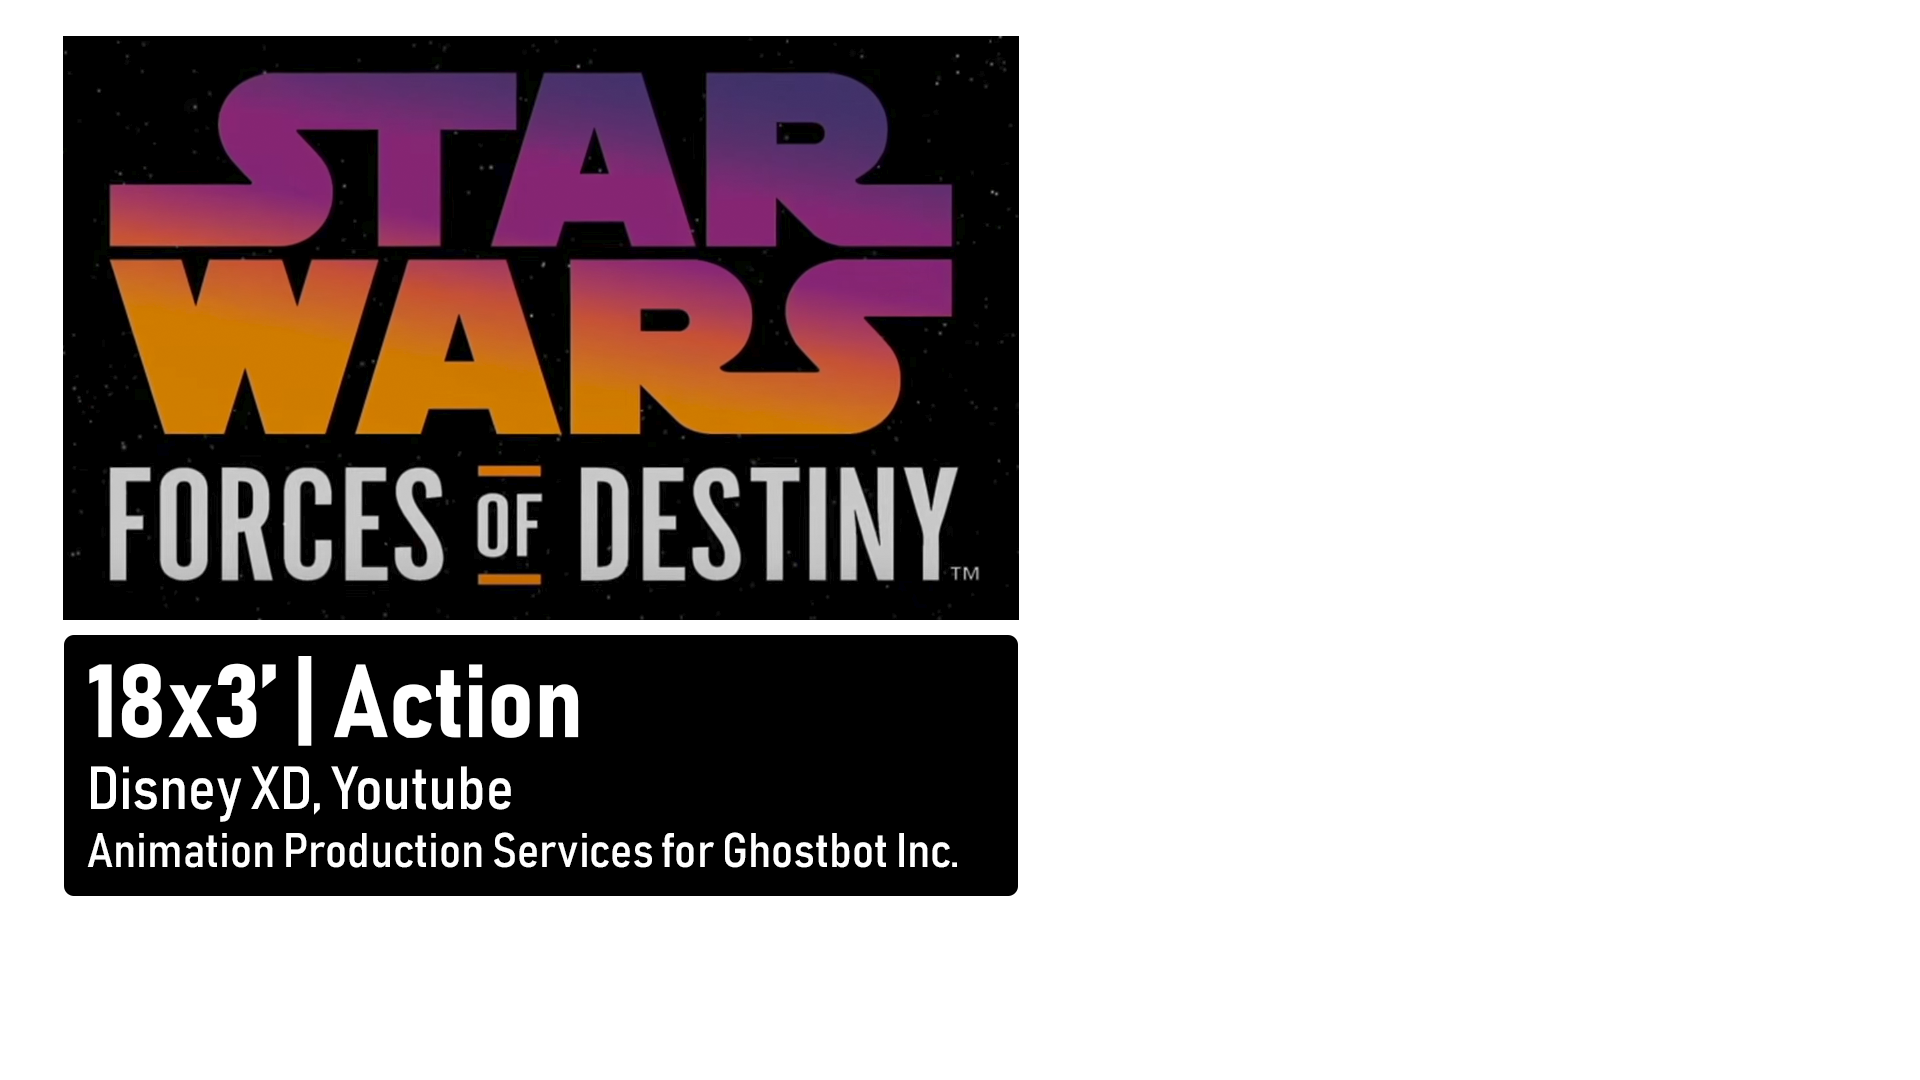 starwars_logo_canto.png